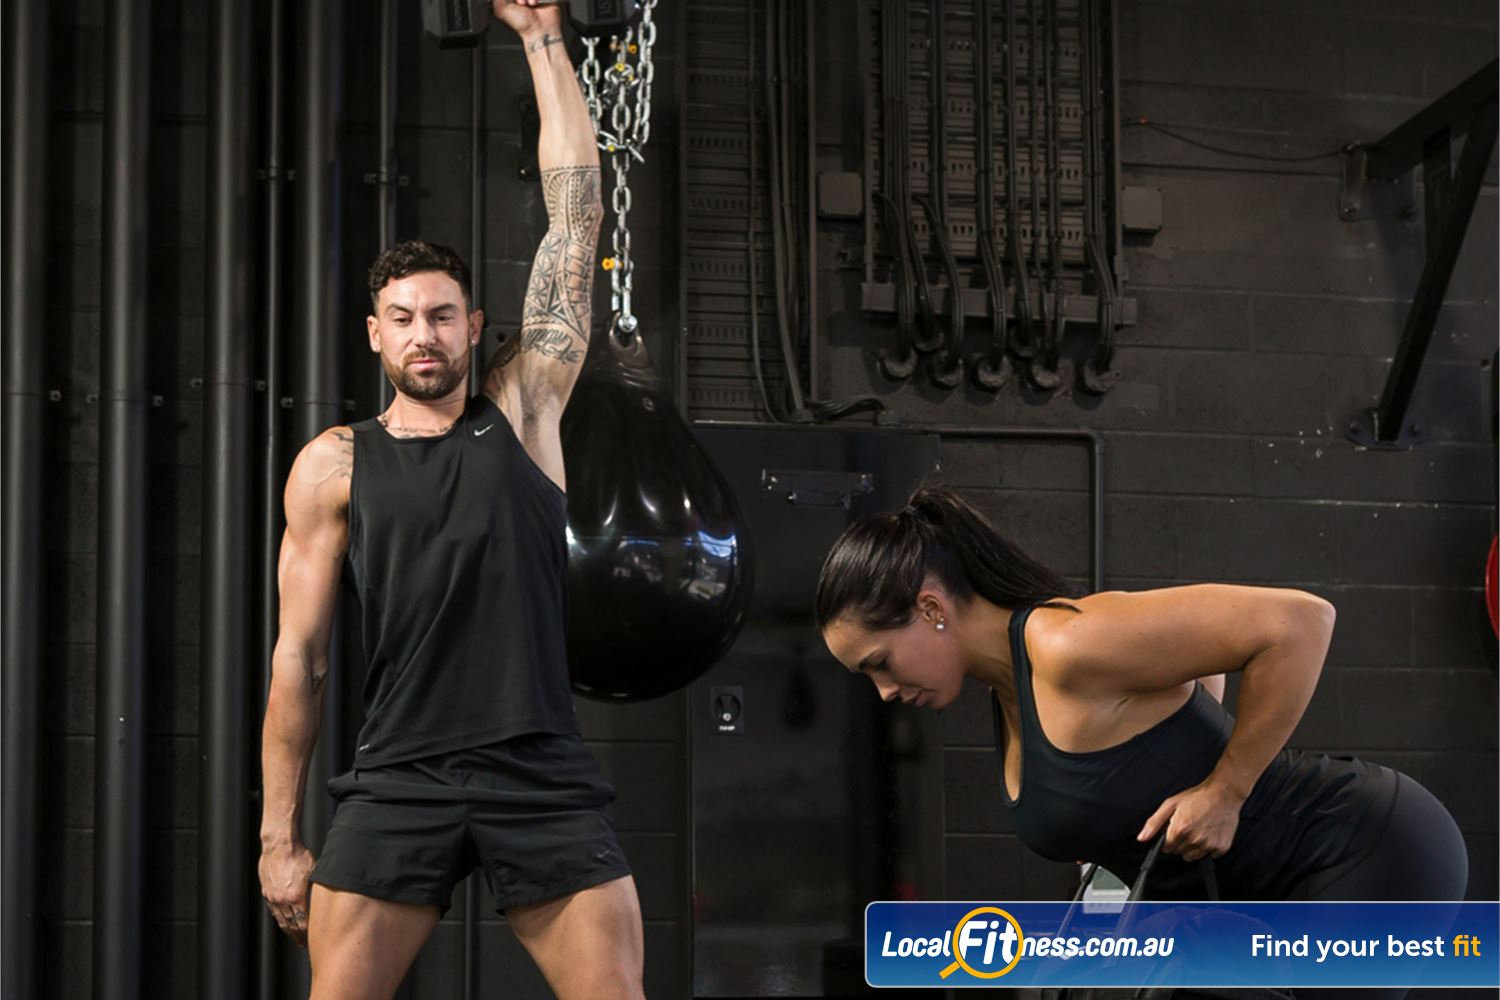 12 Round Fitness Near Canterbury Built around functional strength, conditioning and sports-based cardio.